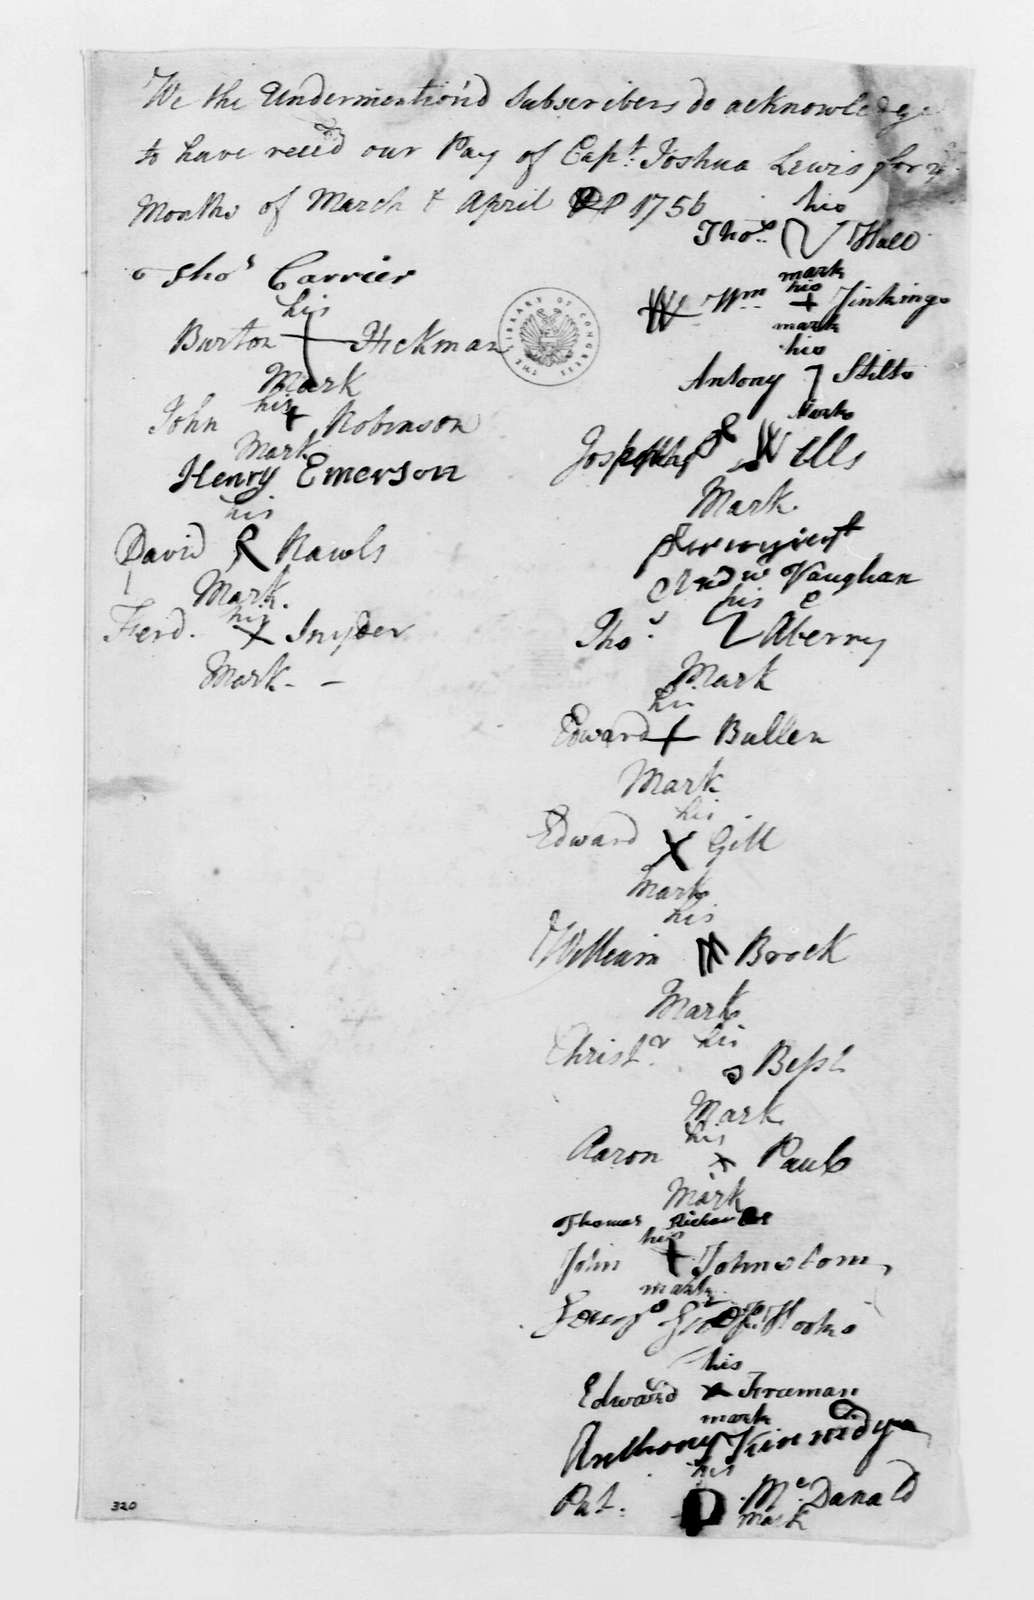 George Washington Papers, Series 4, General Correspondence: Joshua Lewis, April 1756, Company Payroll Receipts